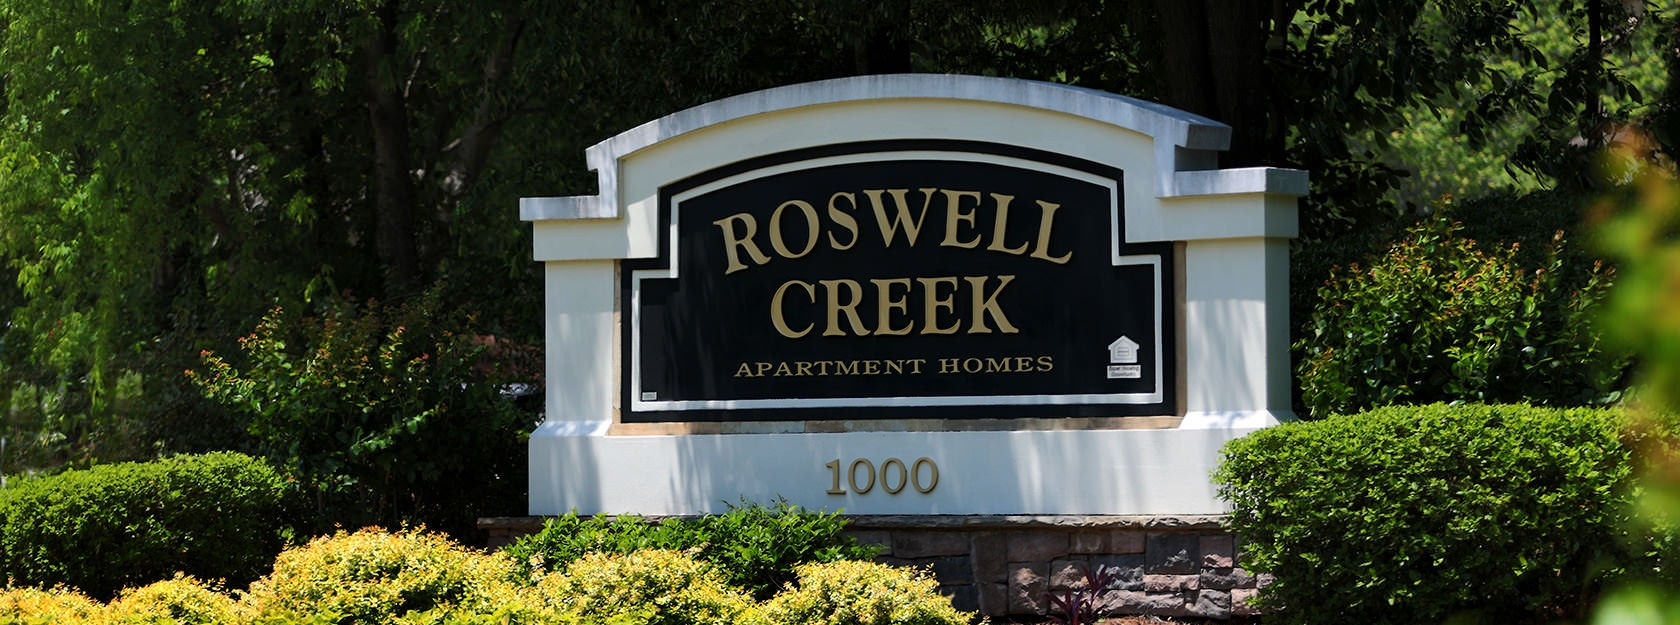 Roswell Creek stone sign at property entrance